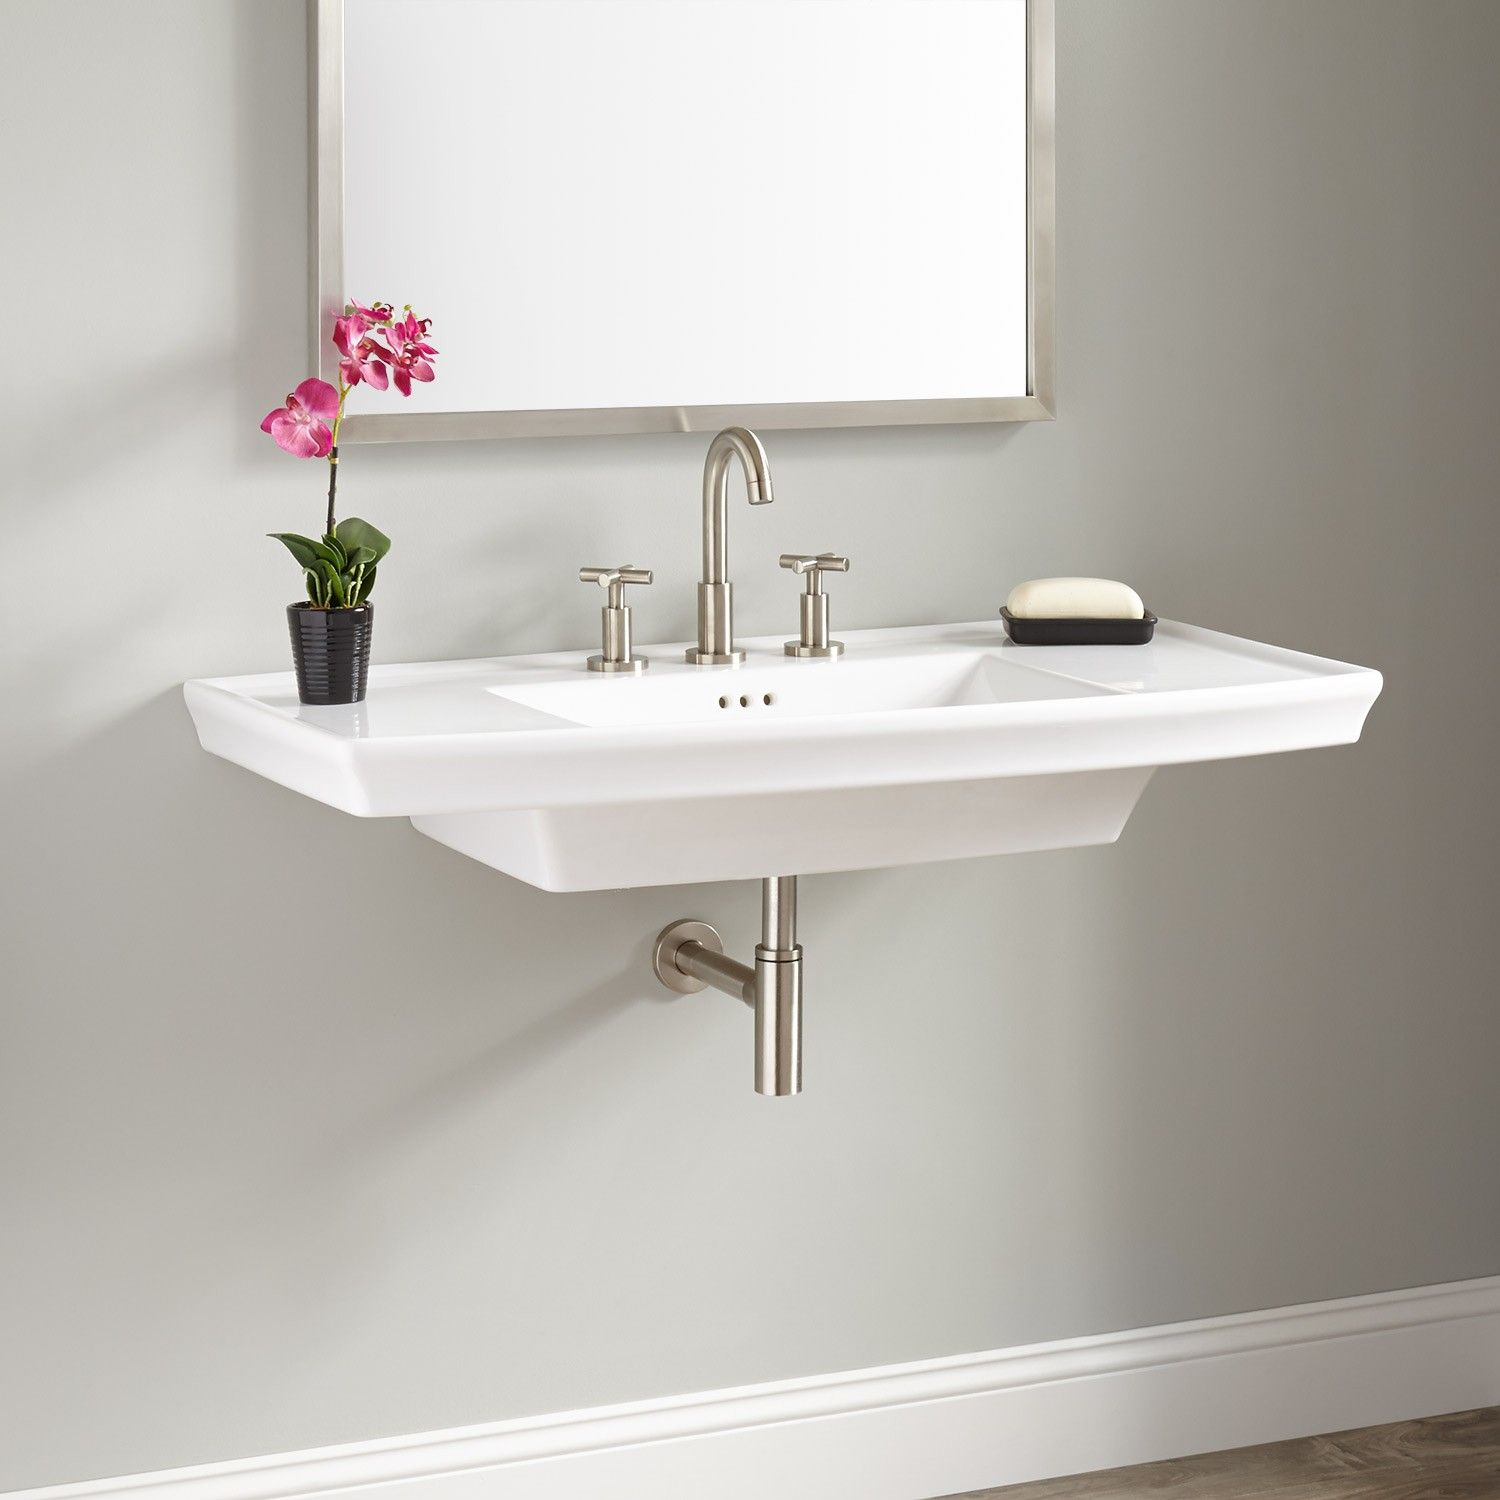 Fabulous Olney Porcelain Wall-Mount Sink | Pinterest | Wall Mounted Sink for Small Bathroom Sinks Wall Mount